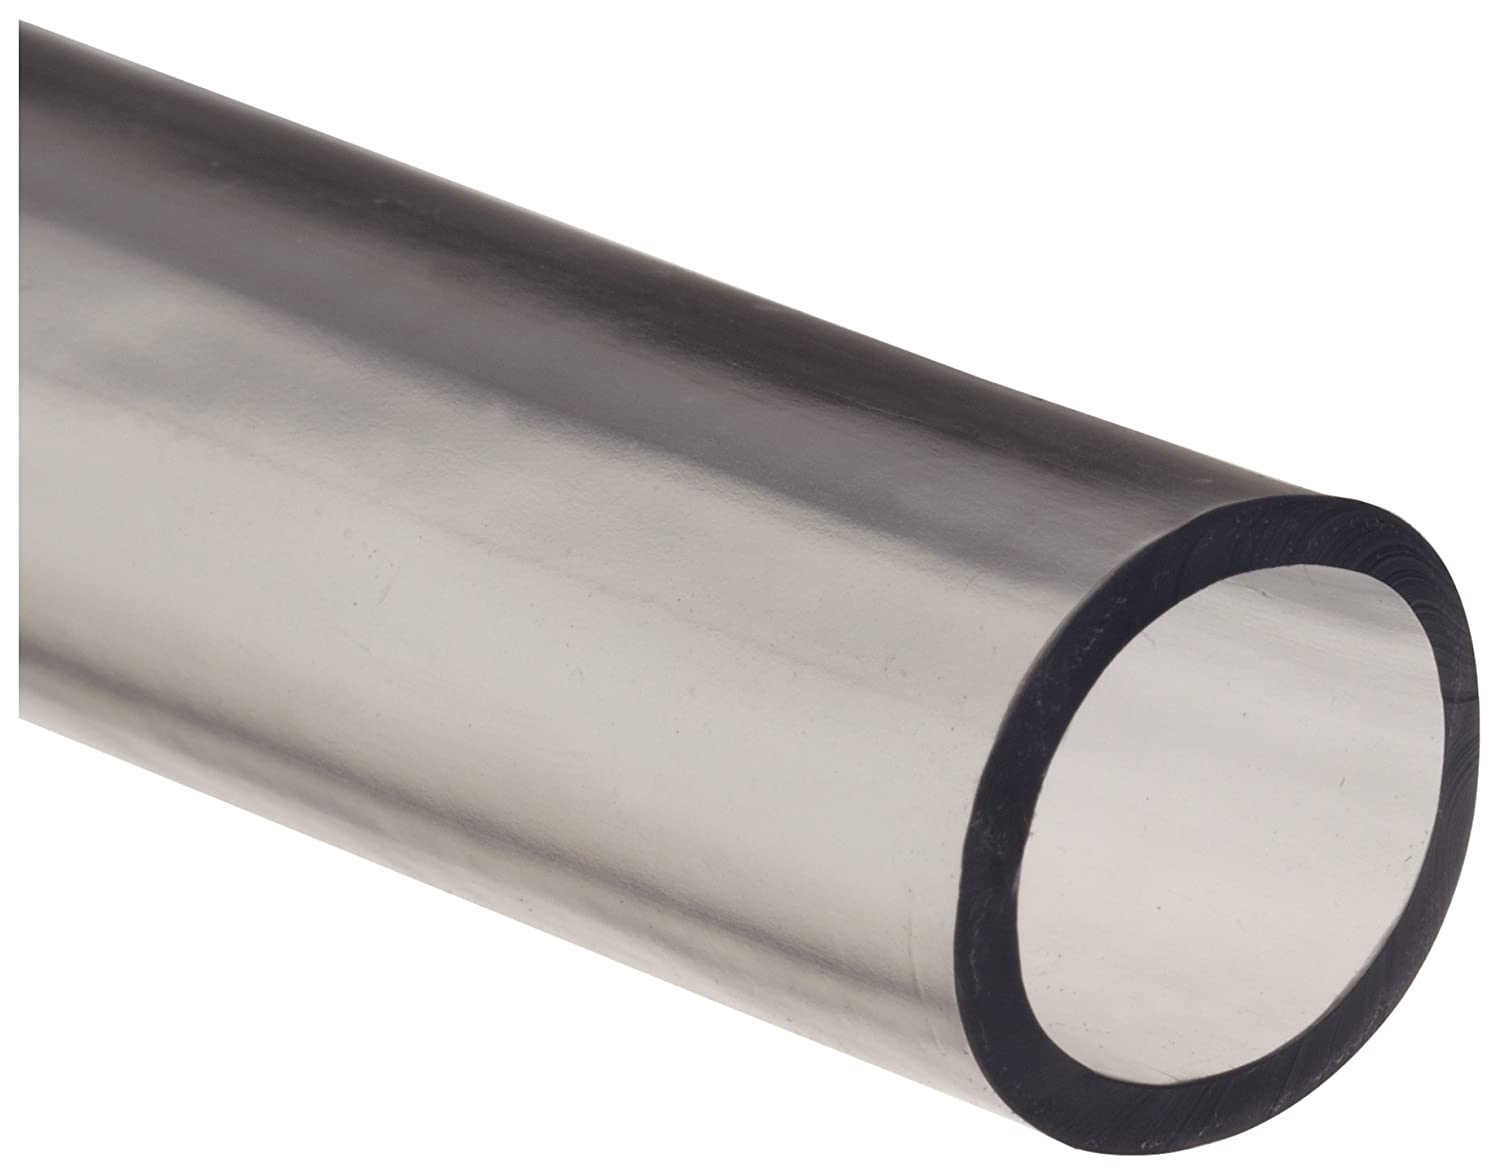 1//4 ID Small Parts CFT-1149-25 Clear PVC Tubing 1//16 Wall 25 Length 3//8 OD